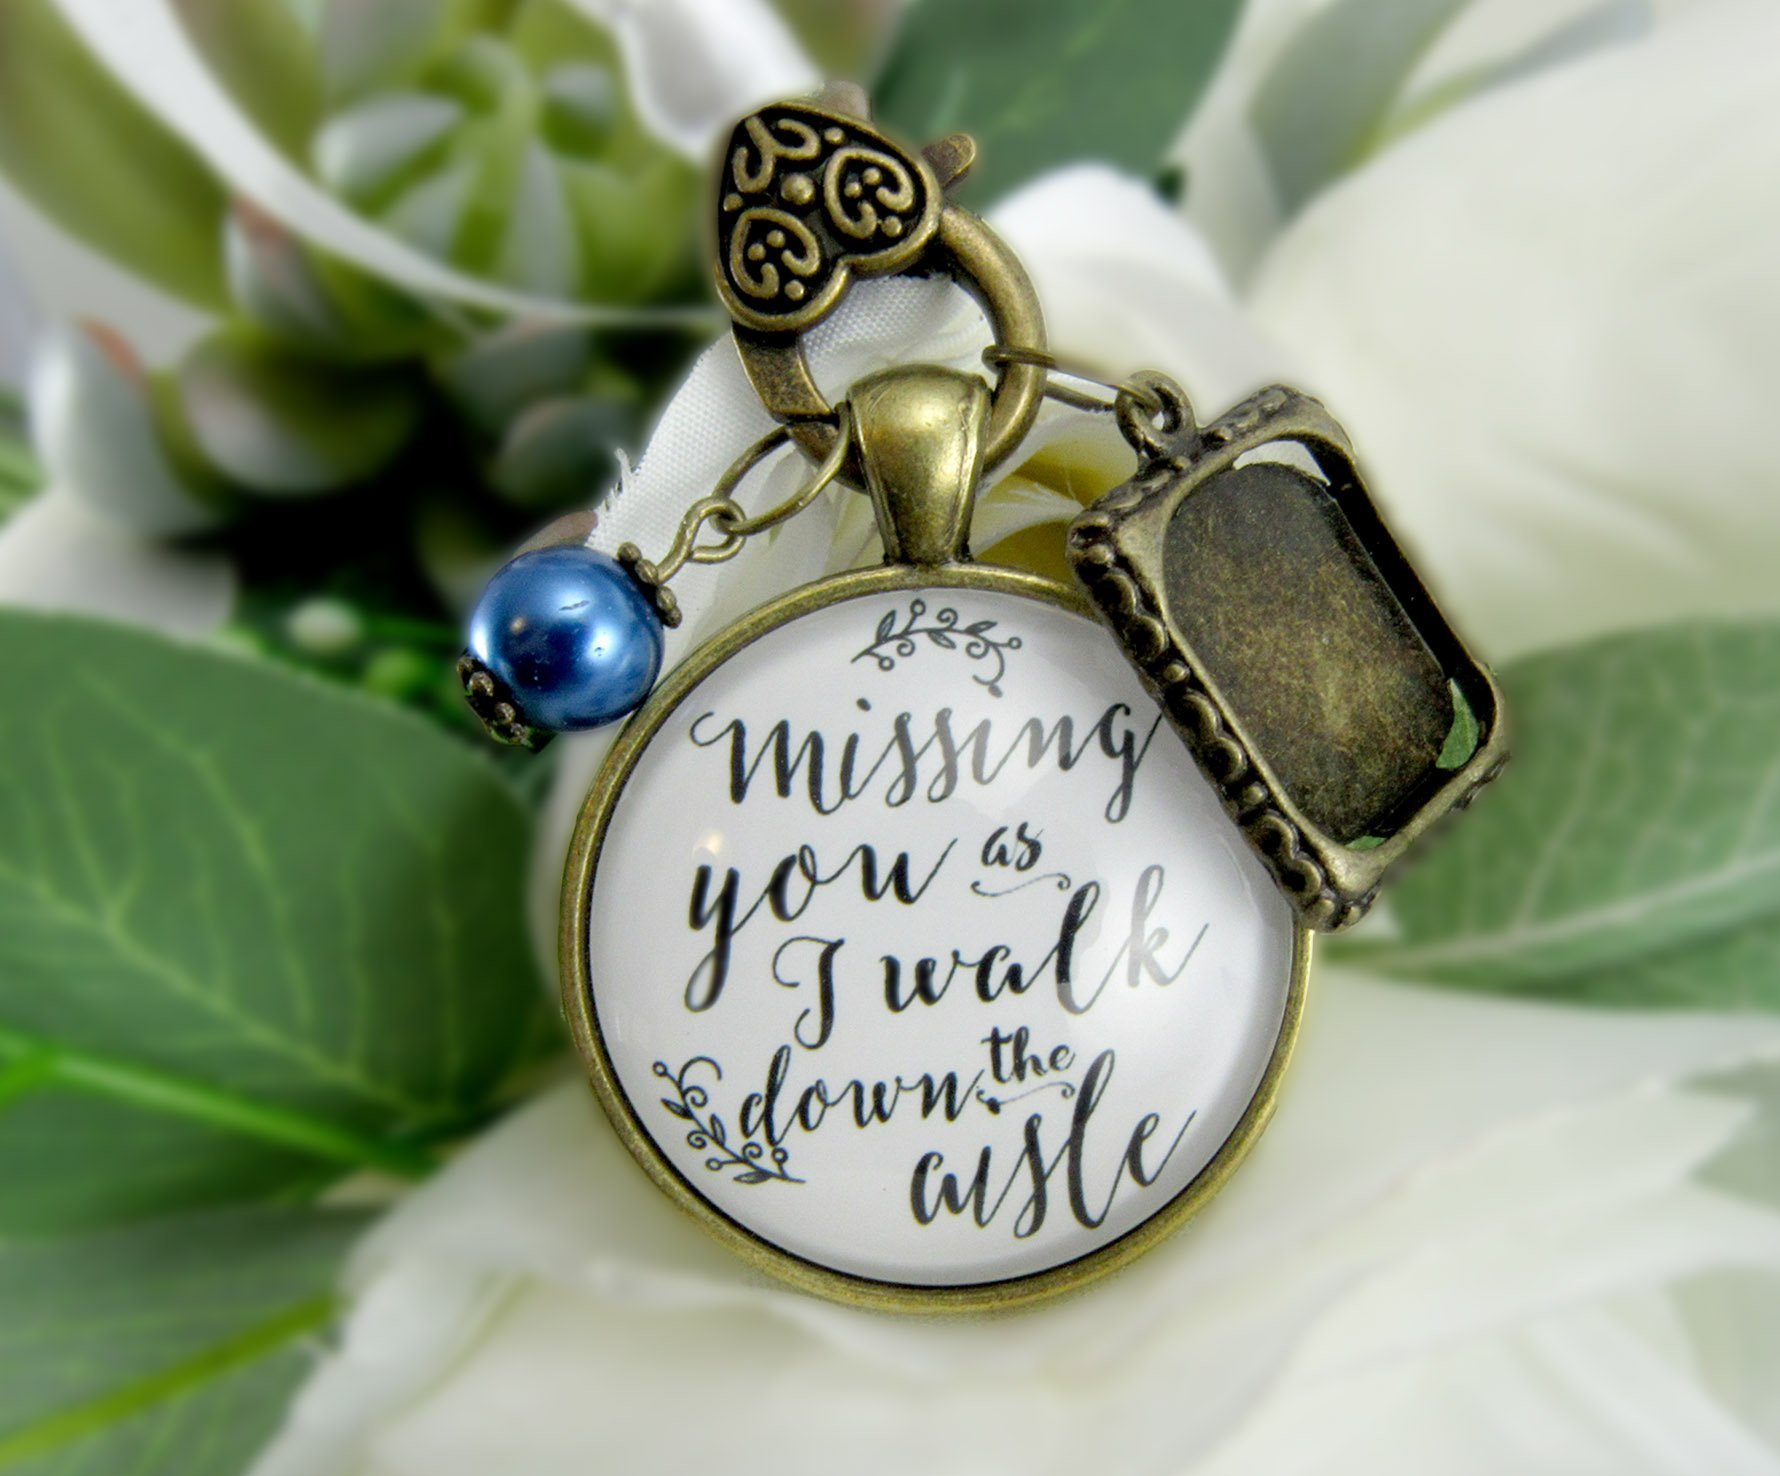 Wedding Bouquet Memory Charm Missing You As I Walk Down the Aisle Blue Bead White Bridal Pendant Memorial Remembrance Photo Jewelry